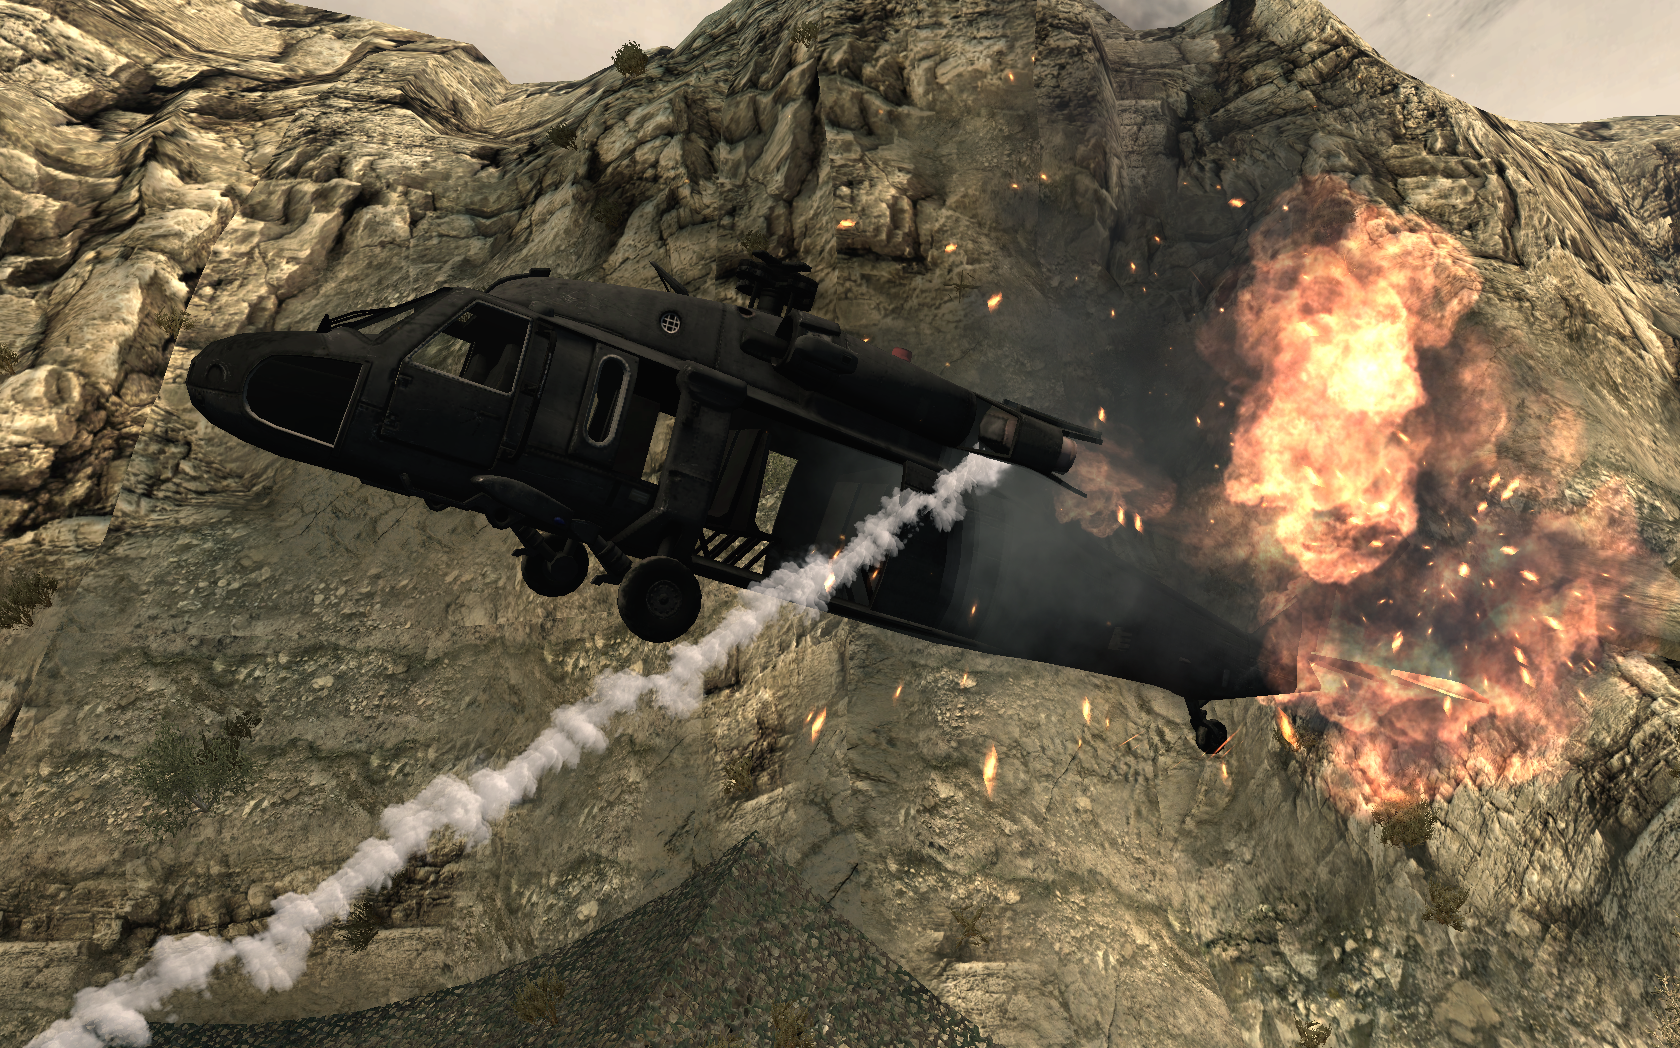 http://vignette3.wikia.nocookie.net/callofduty/images/b/b7/Shadow_Company_Blackhawk_going_down_Just_Like_Old_Times_MW2.png/revision/latest?cb=20121229225925 Black Hawk Down Movie Helicopter Crash